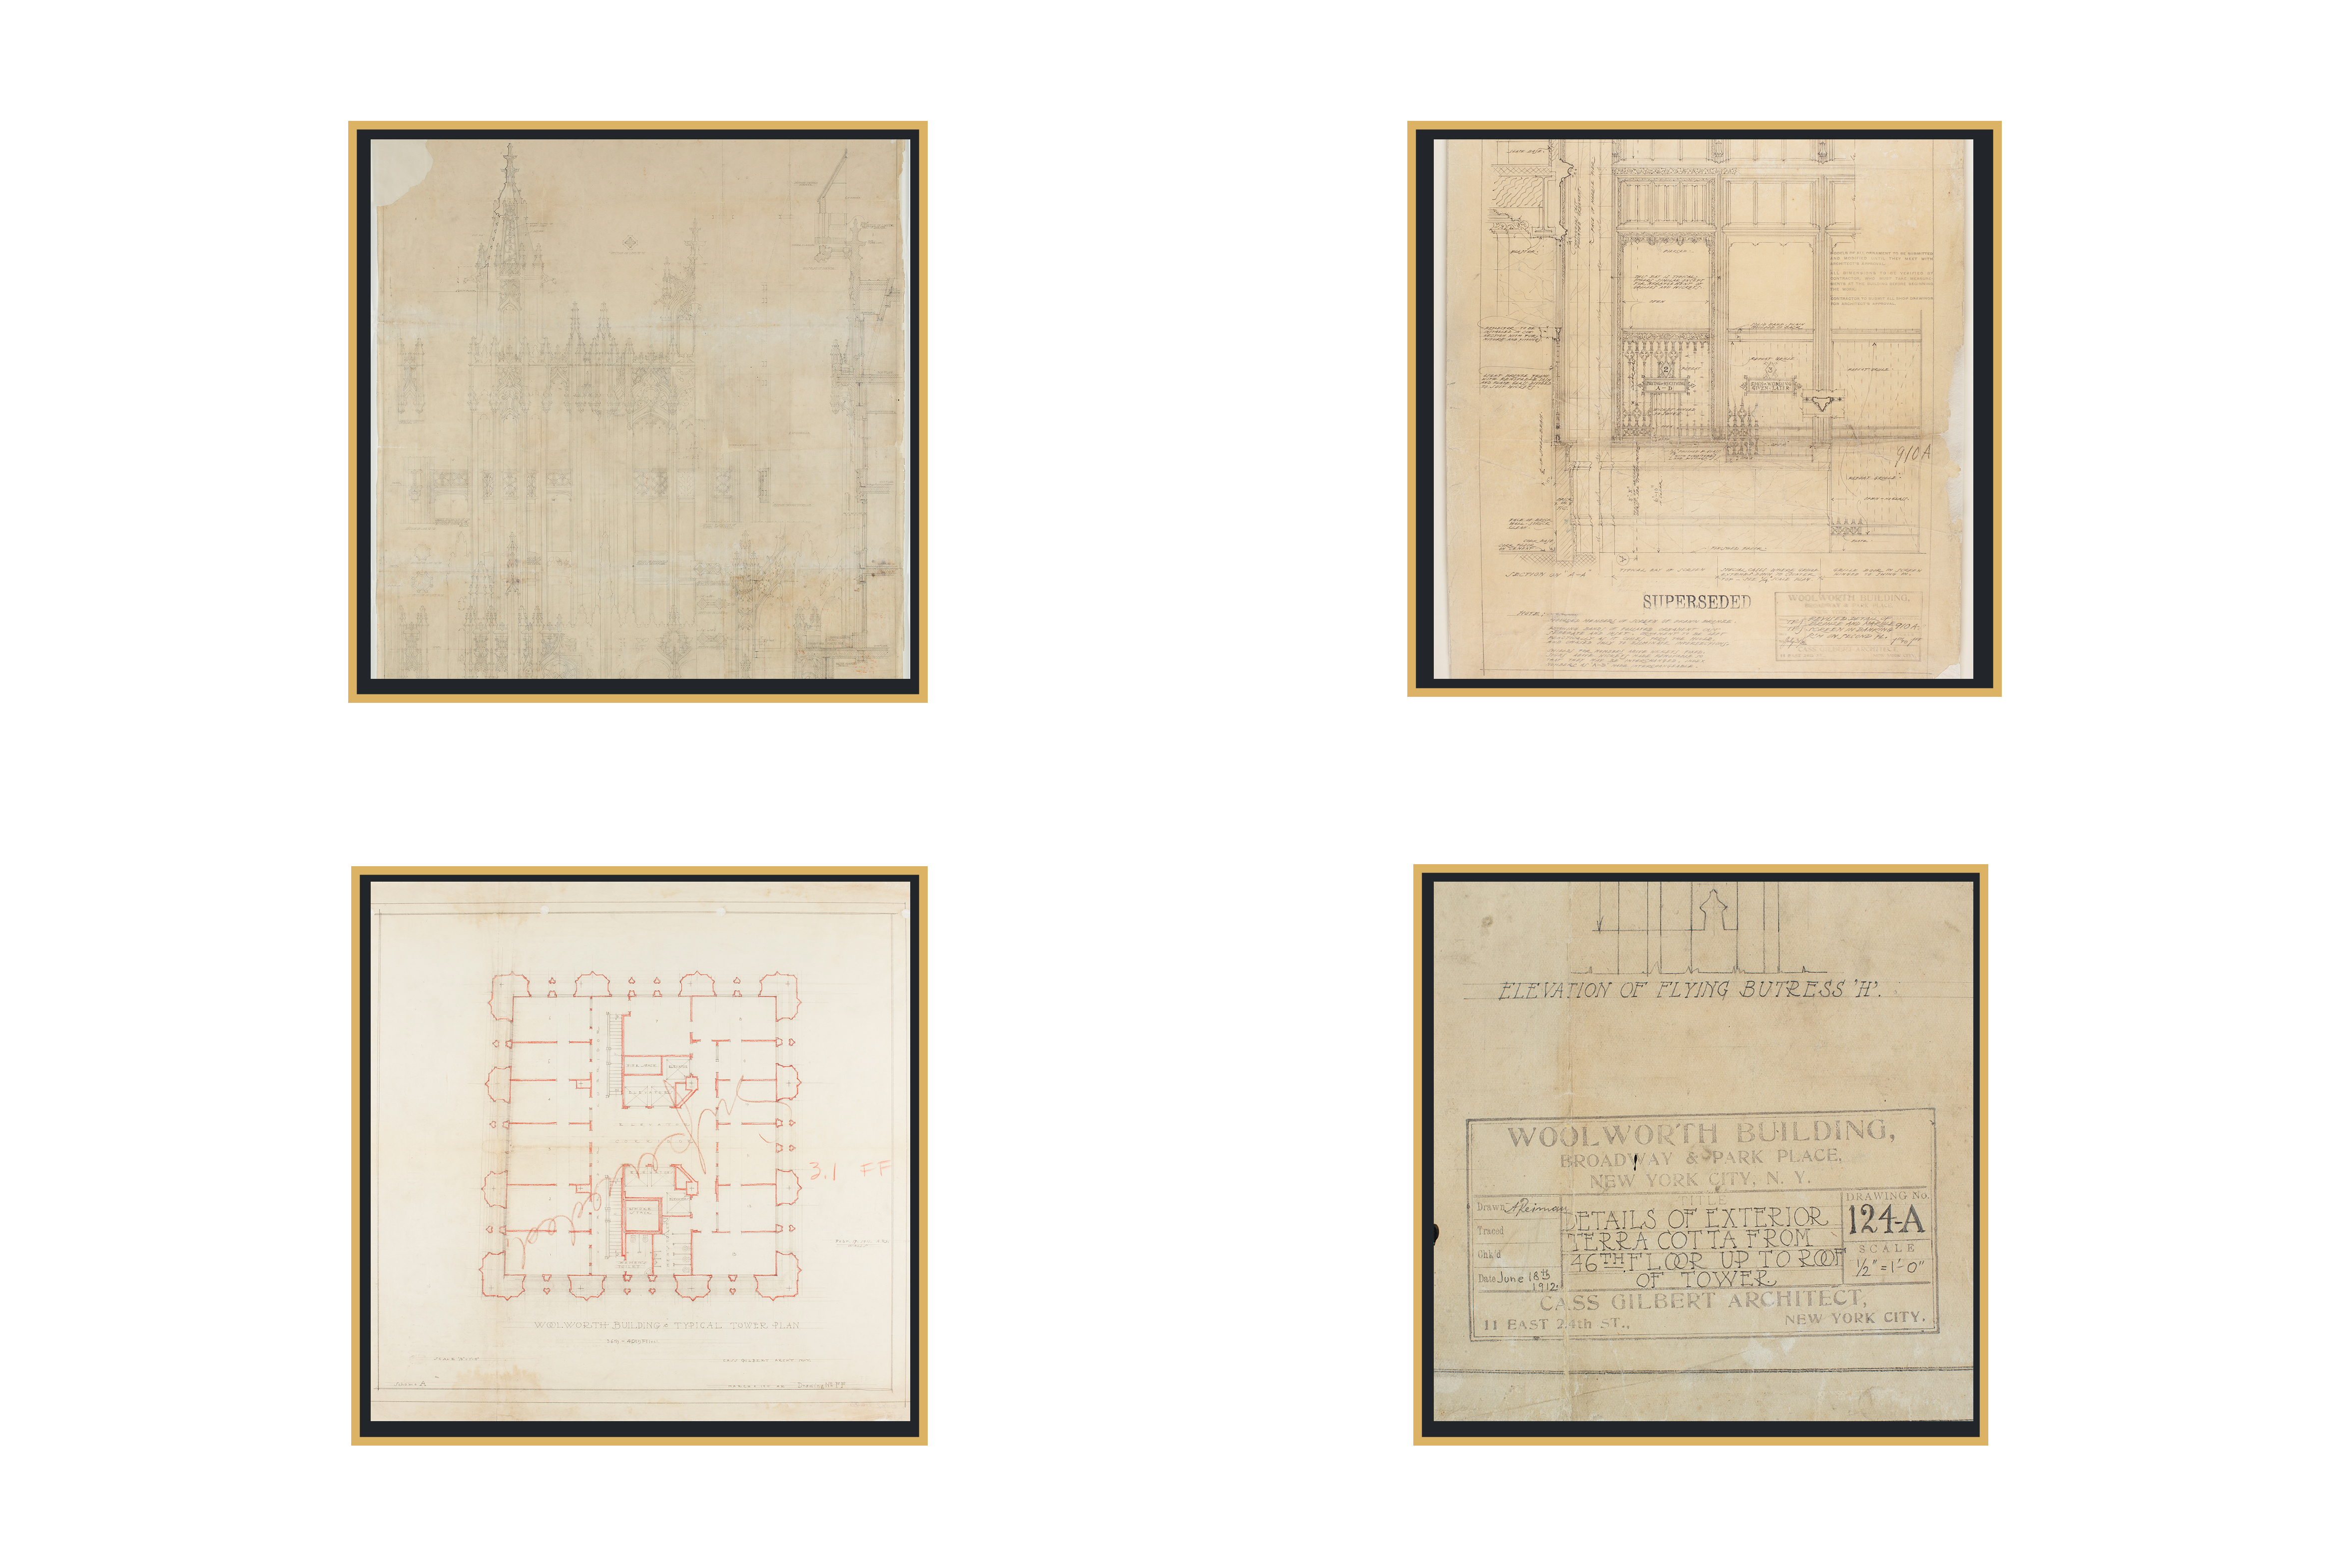 working drawings of the Woolworth Building by Cass Gilbert, architect, showing features of the building's exteriors, an interior floor plan, and a label identifying the building